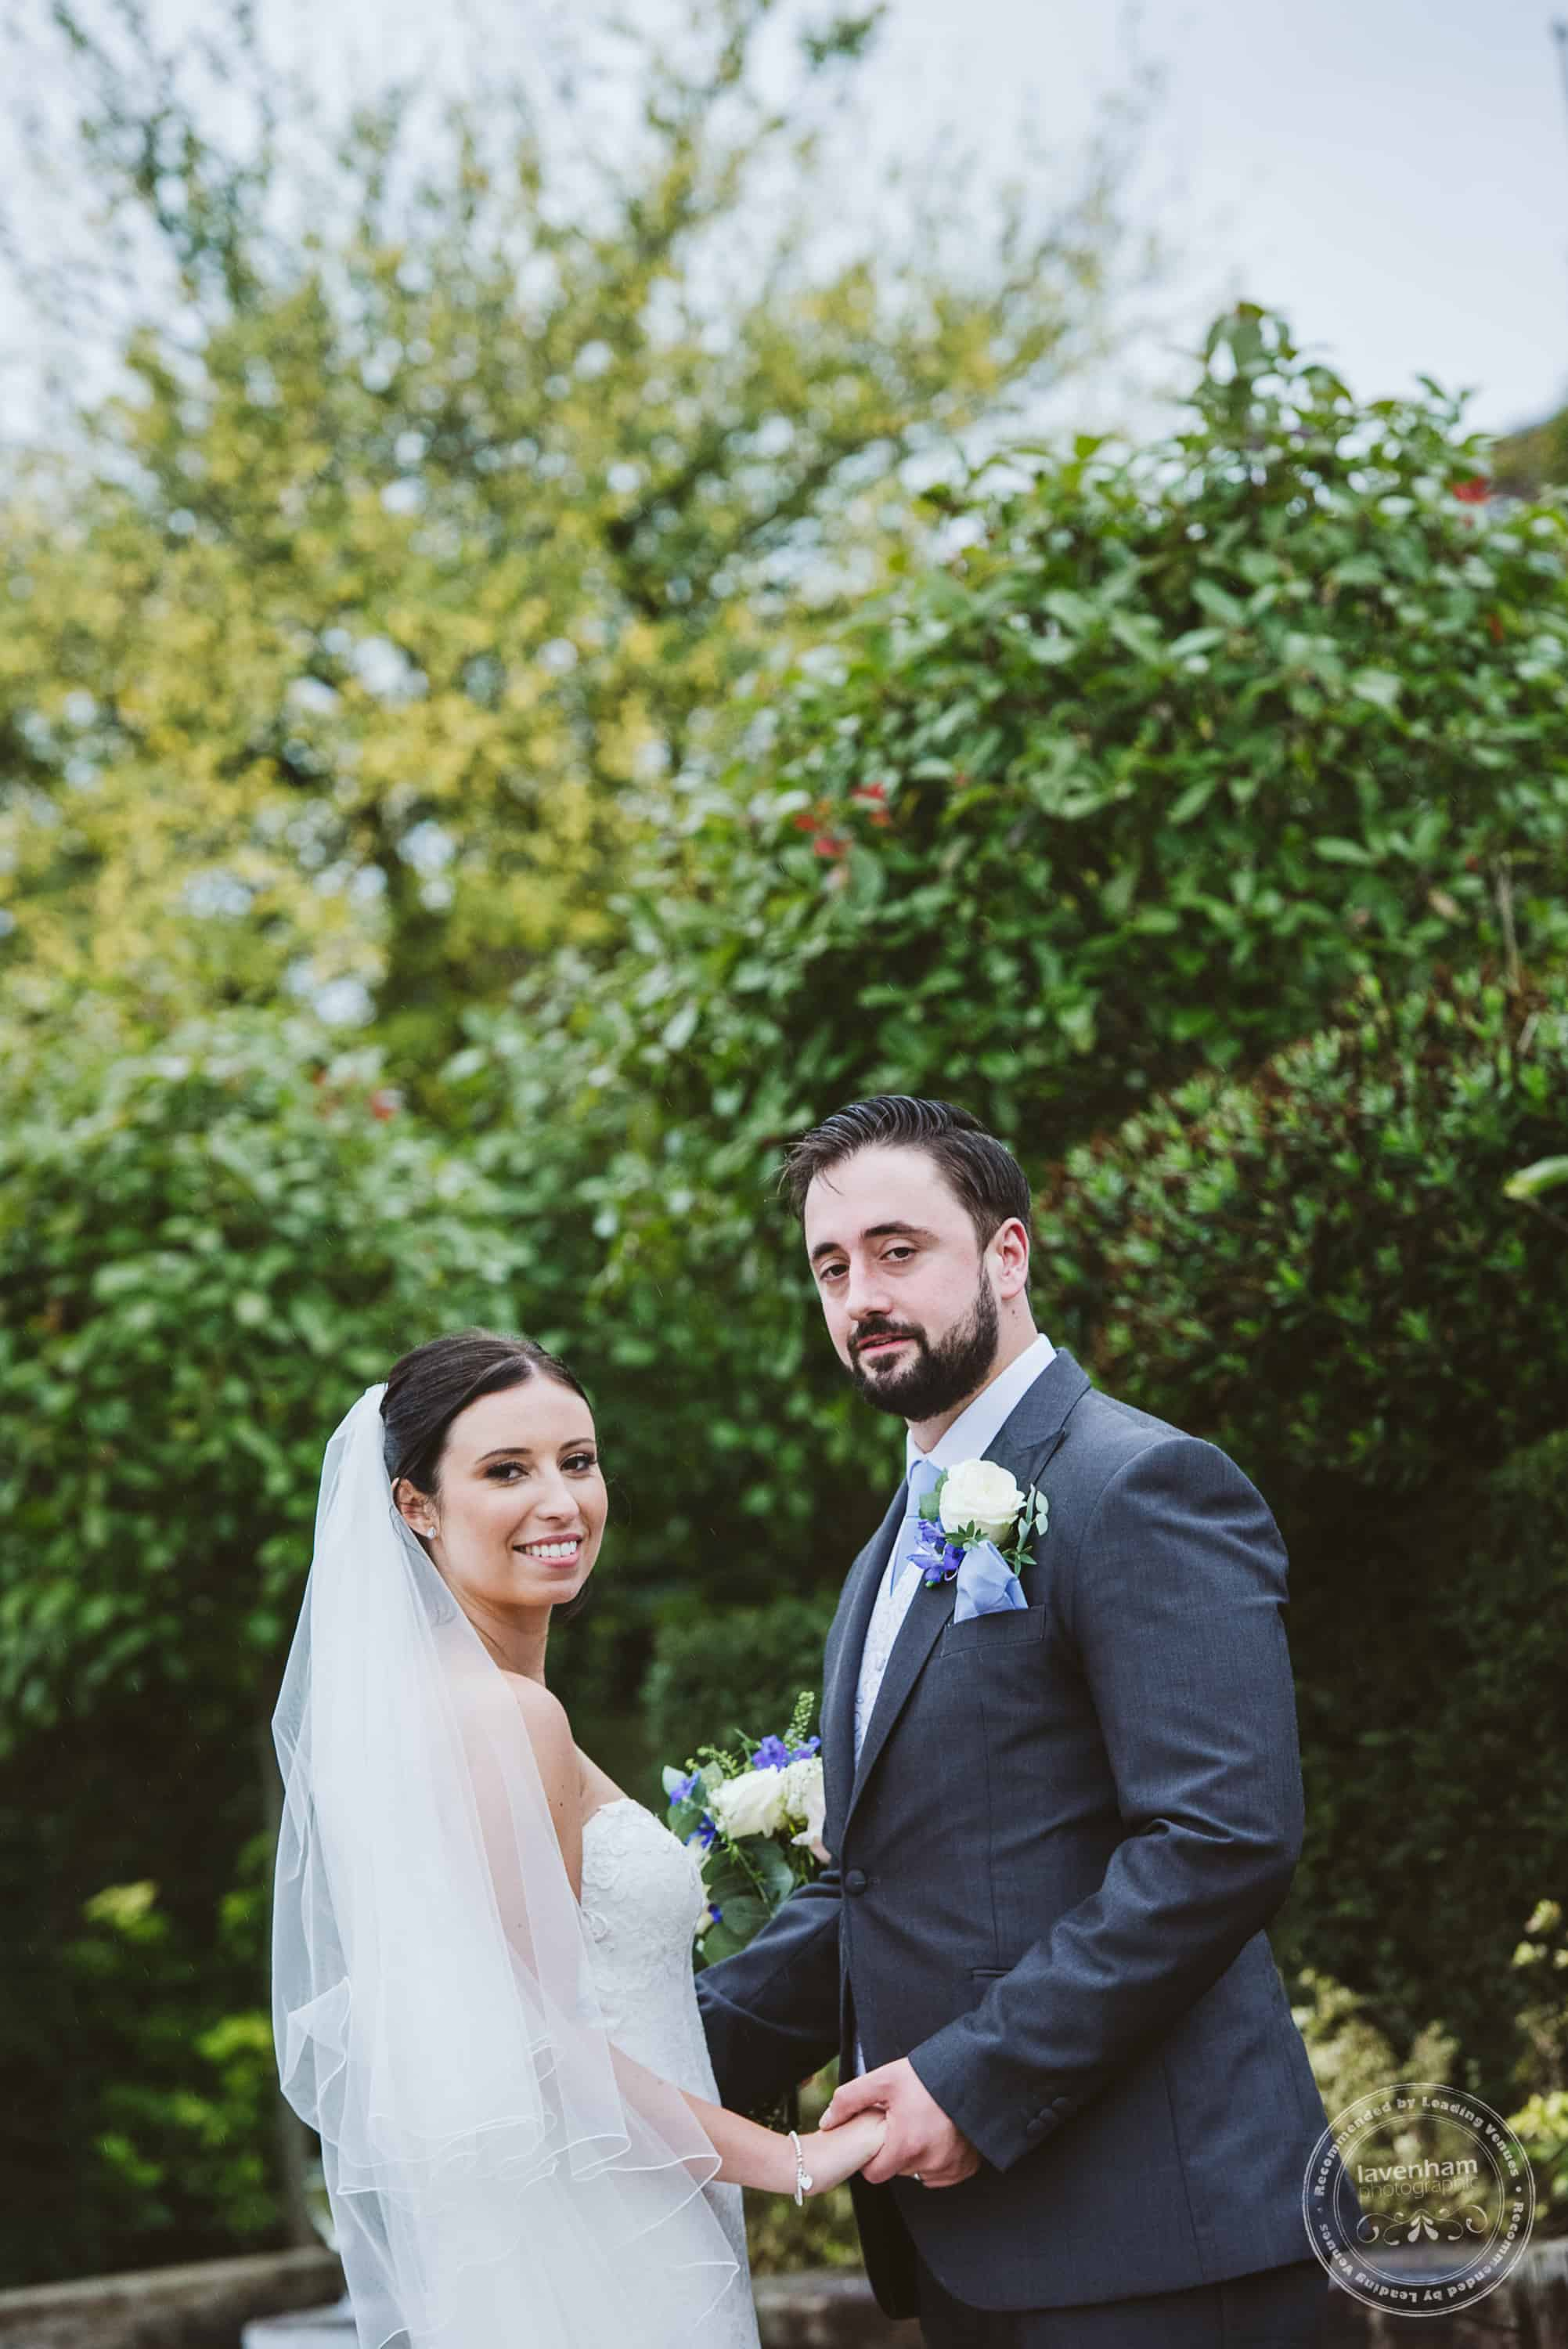 261019 Bull and Willow Room Essex Wedding Photographer 065